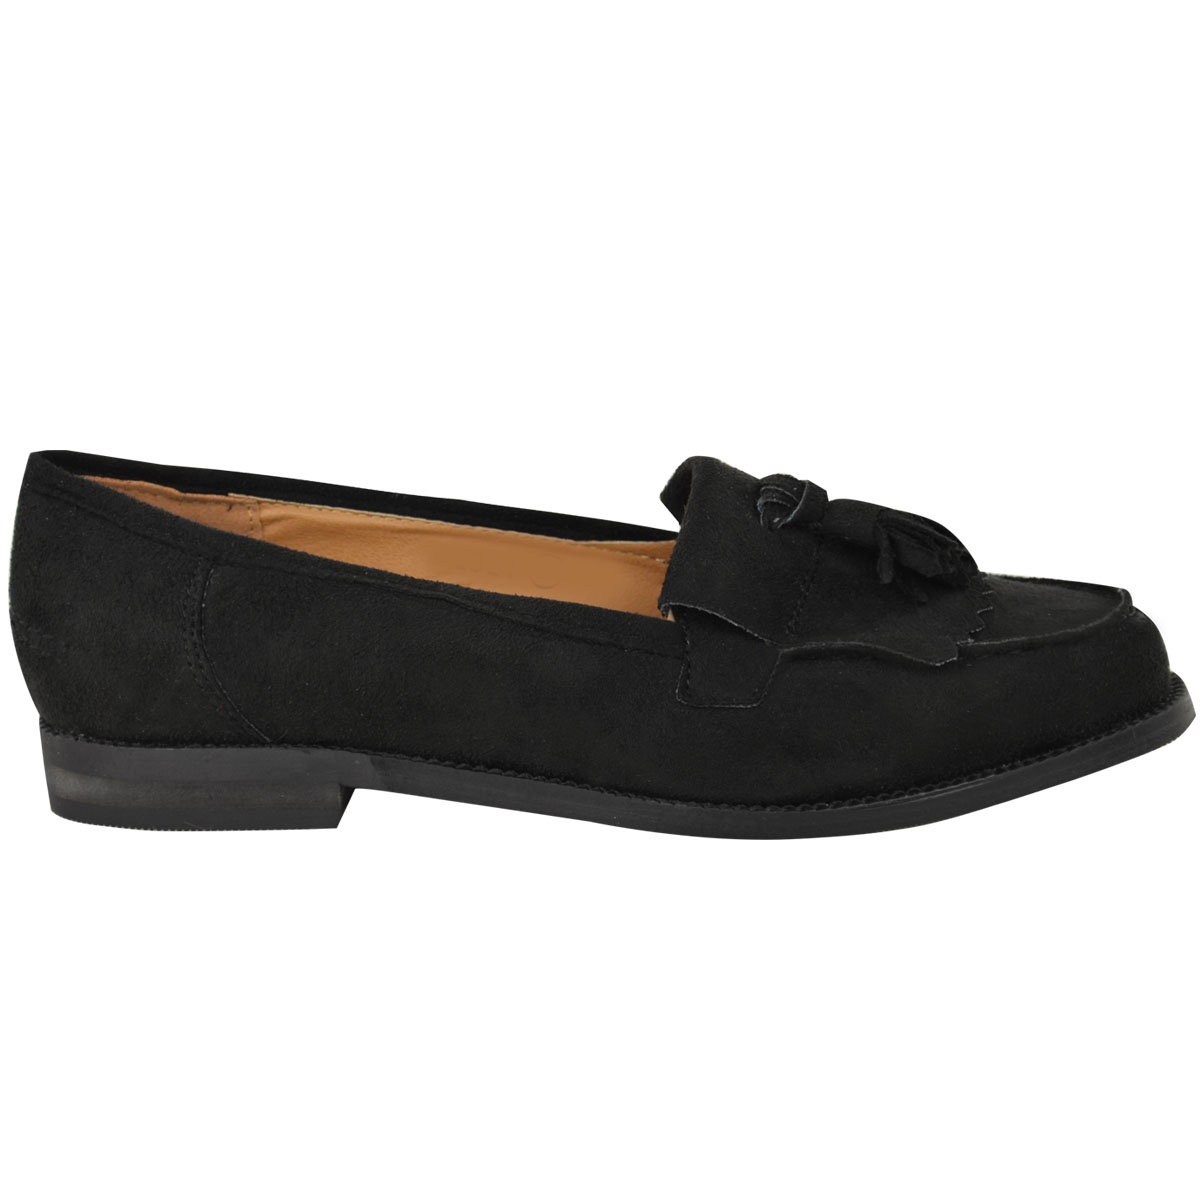 Womens-Ladies-Loafers-Brogues-Pumps-Casual-School-Office-Comfy-Work-Flats-Size thumbnail 31